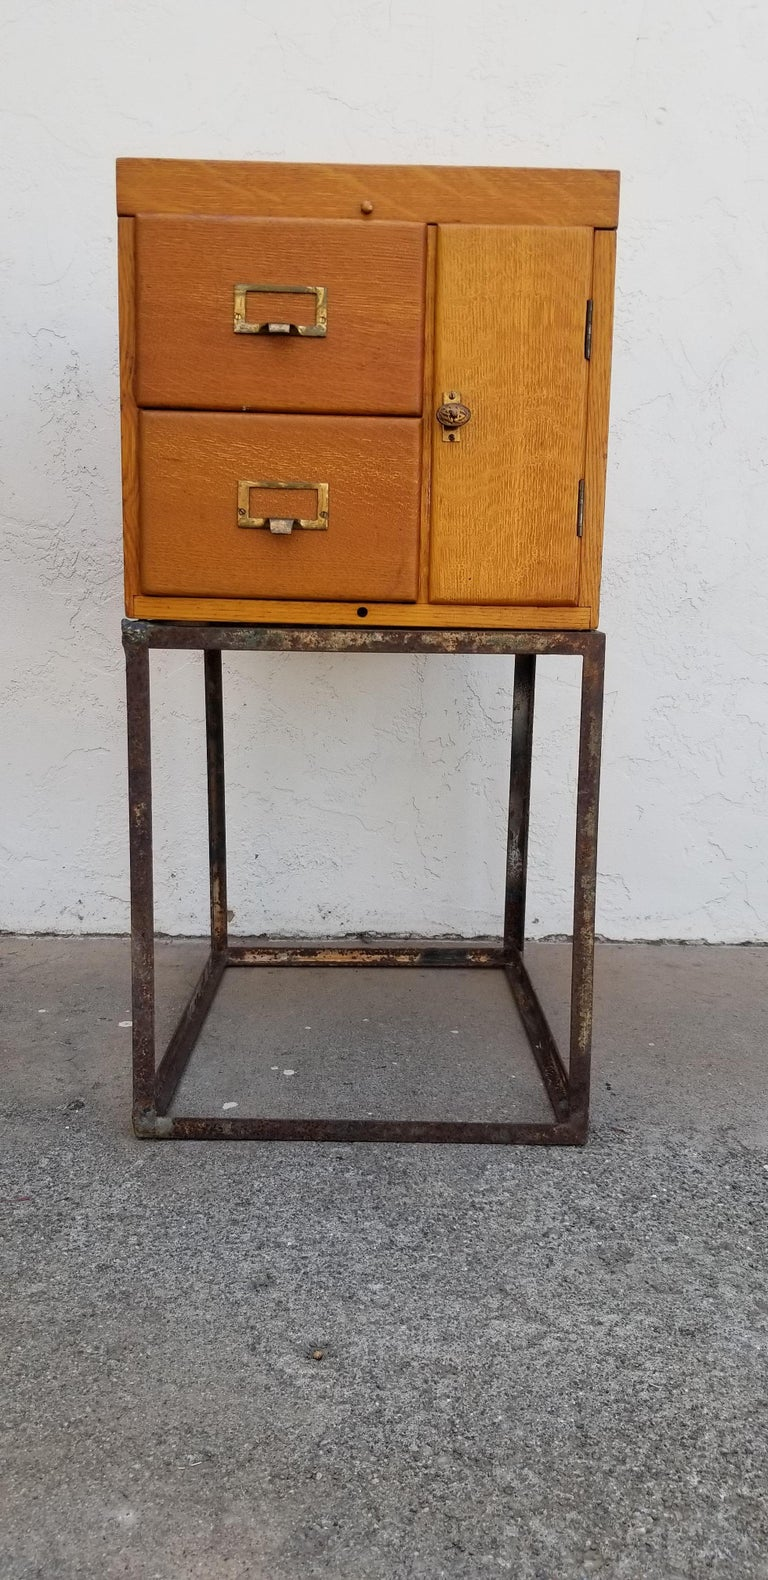 Custom Antique File Cabinet with Steel Base For Sale 4 - Custom Antique File Cabinet With Steel Base For Sale At 1stdibs